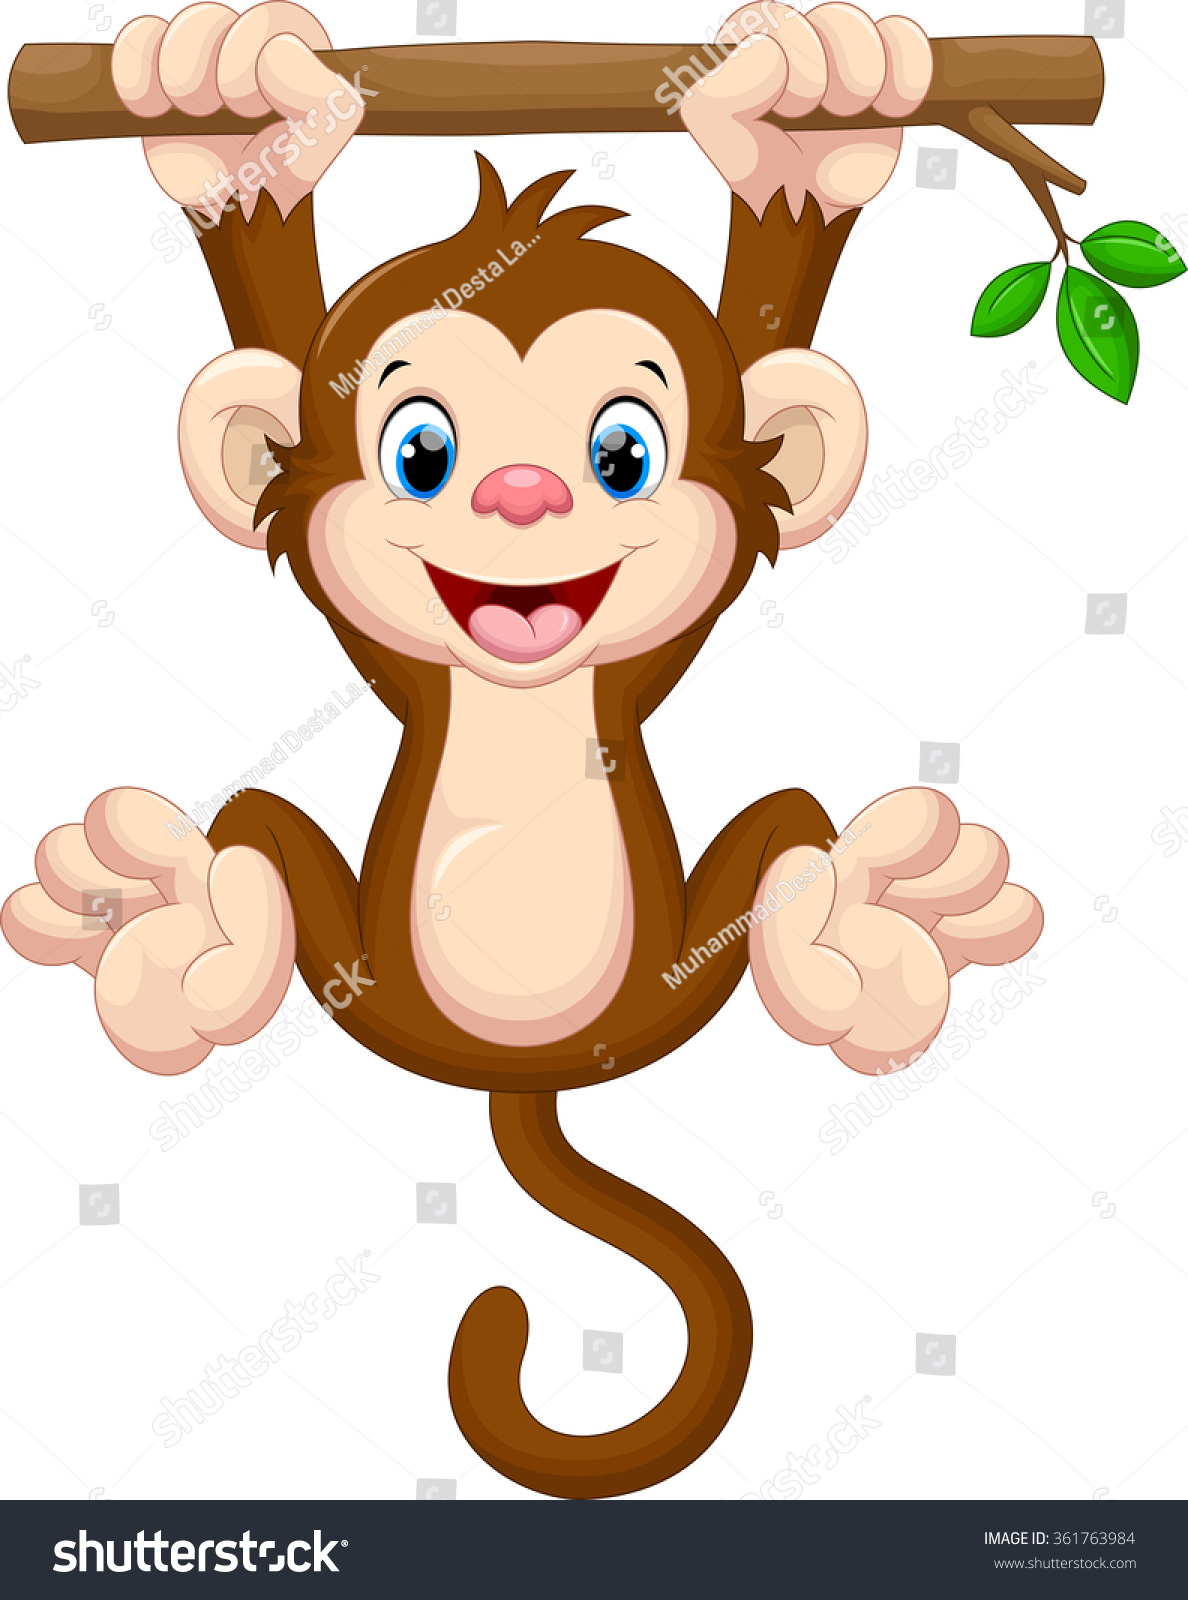 clipart monkey hanging from tree - photo #46